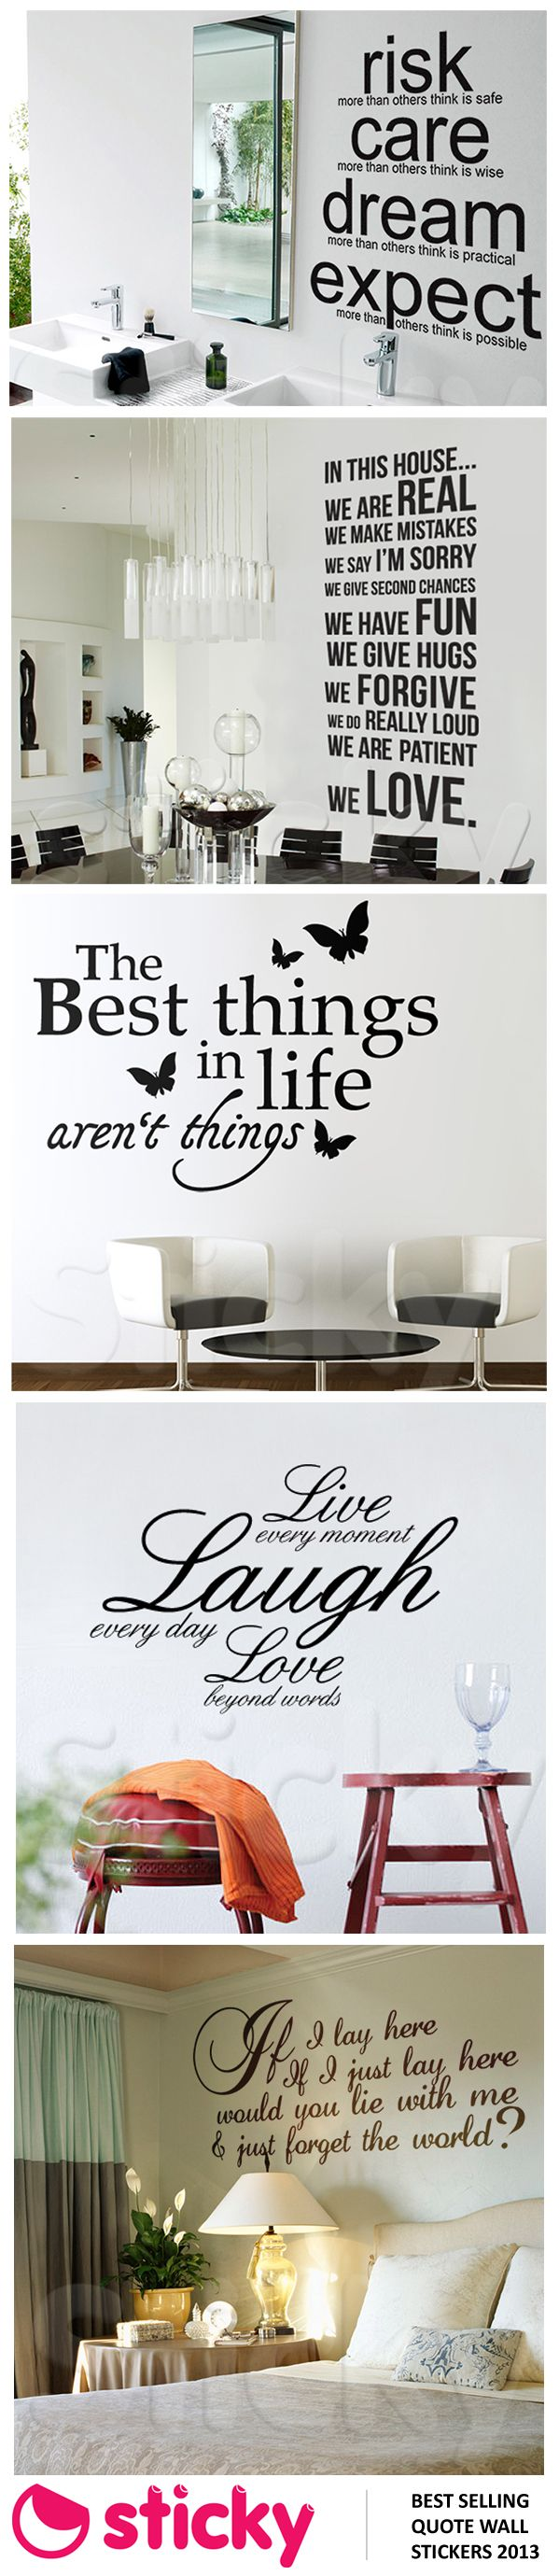 STICKY - Our best selling quote wall stickers for 2013 based on sales!